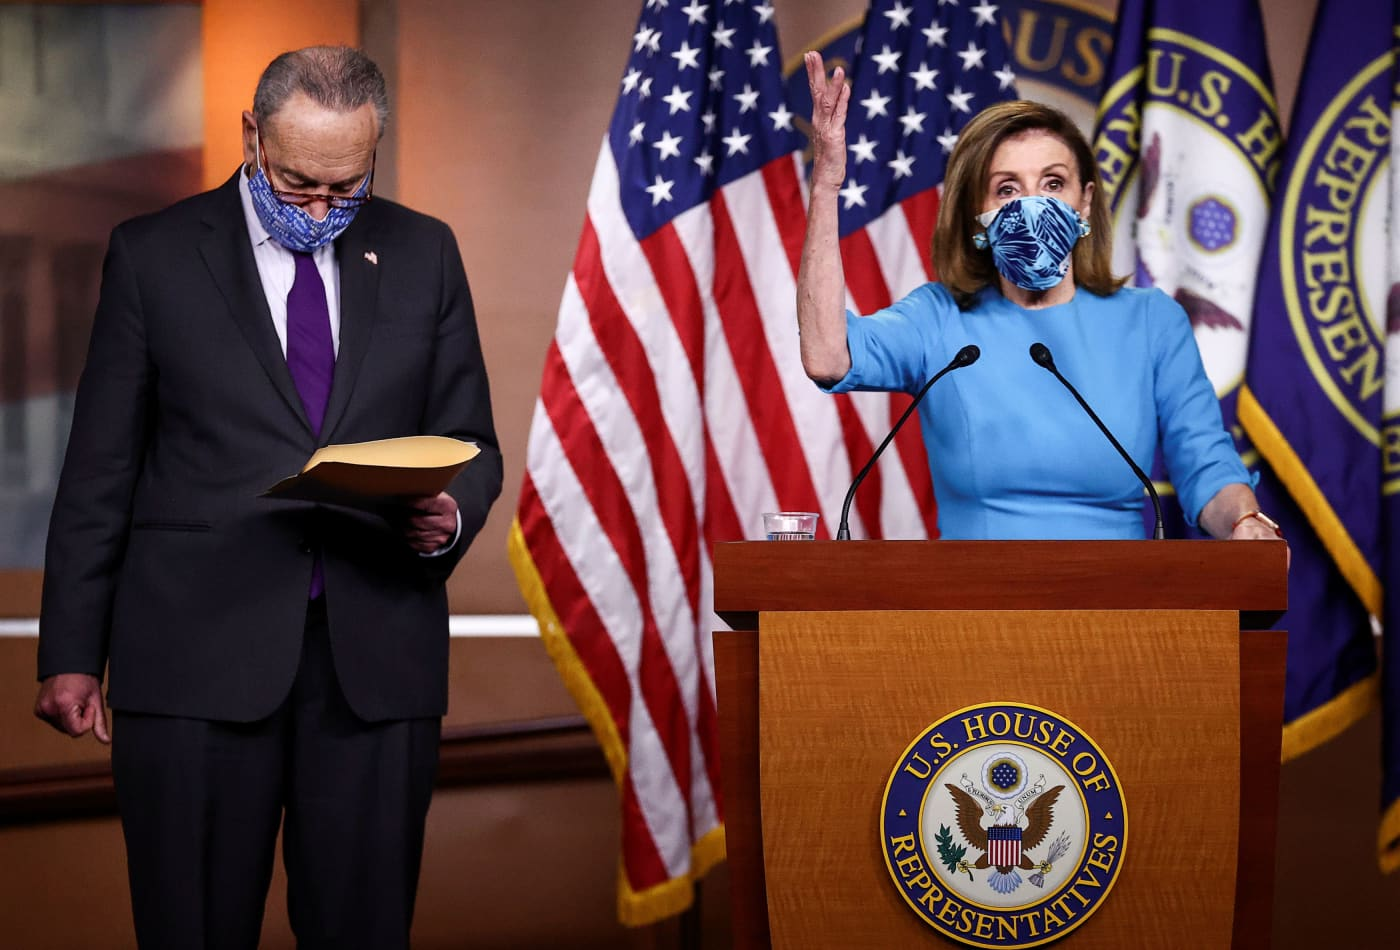 Pelosi and Schumer call for Trump's immediate removal from office for 'insurrection'